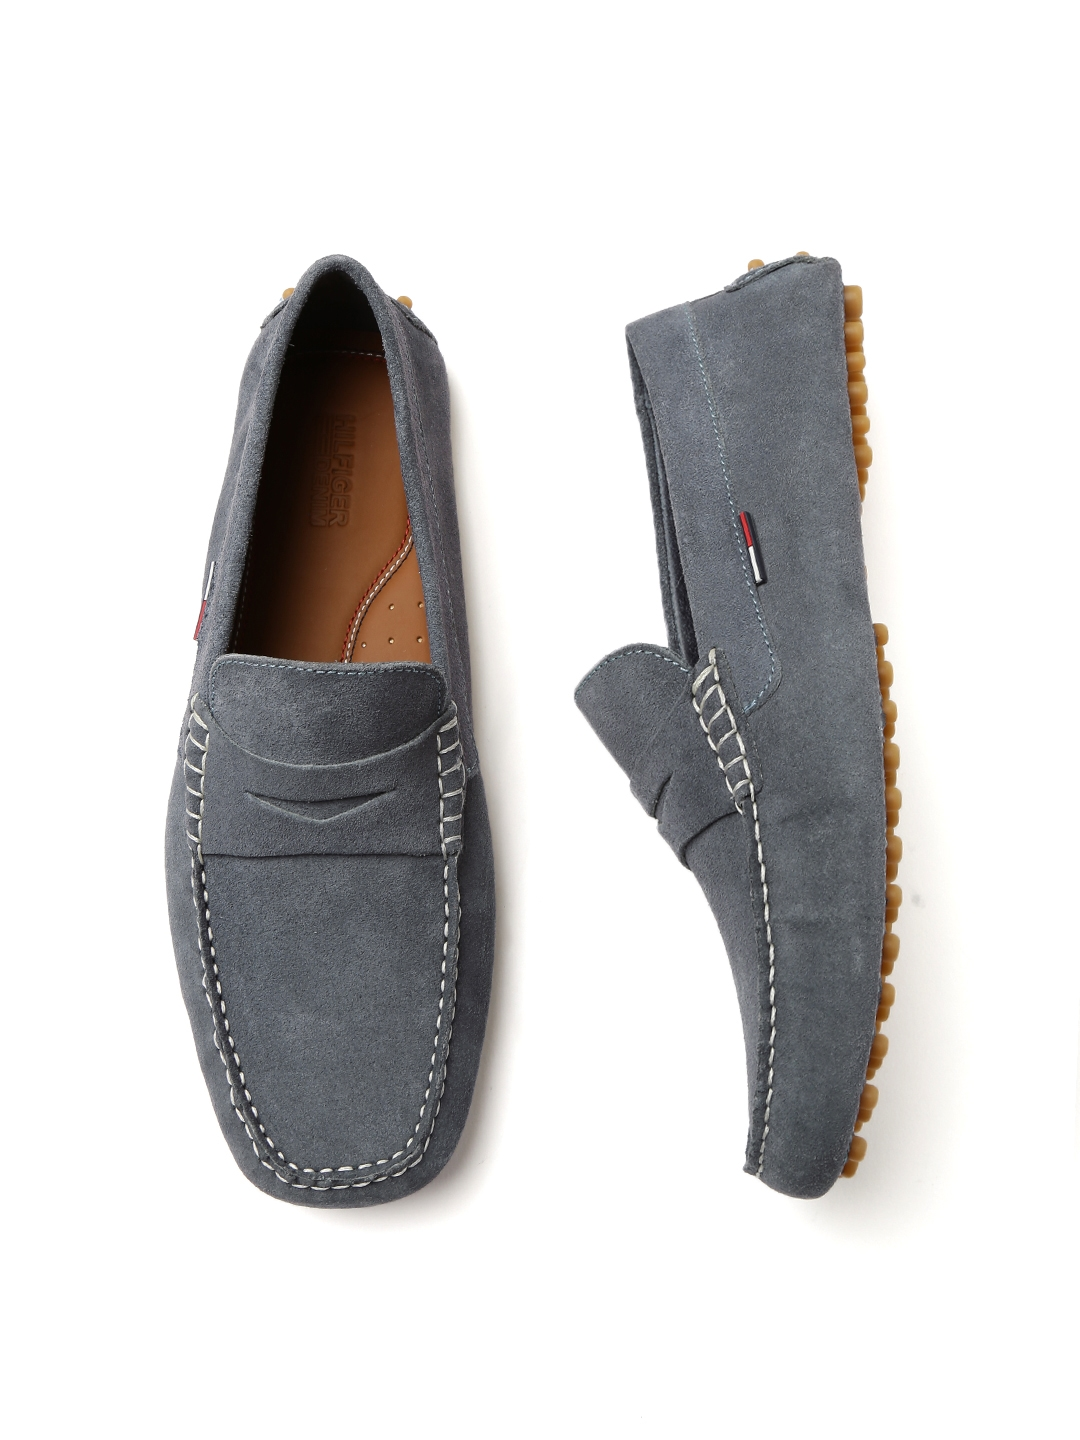 7a55fb156 Buy Tommy Hilfiger Men Blue Solid Suede Driving Shoes - Casual Shoes ...